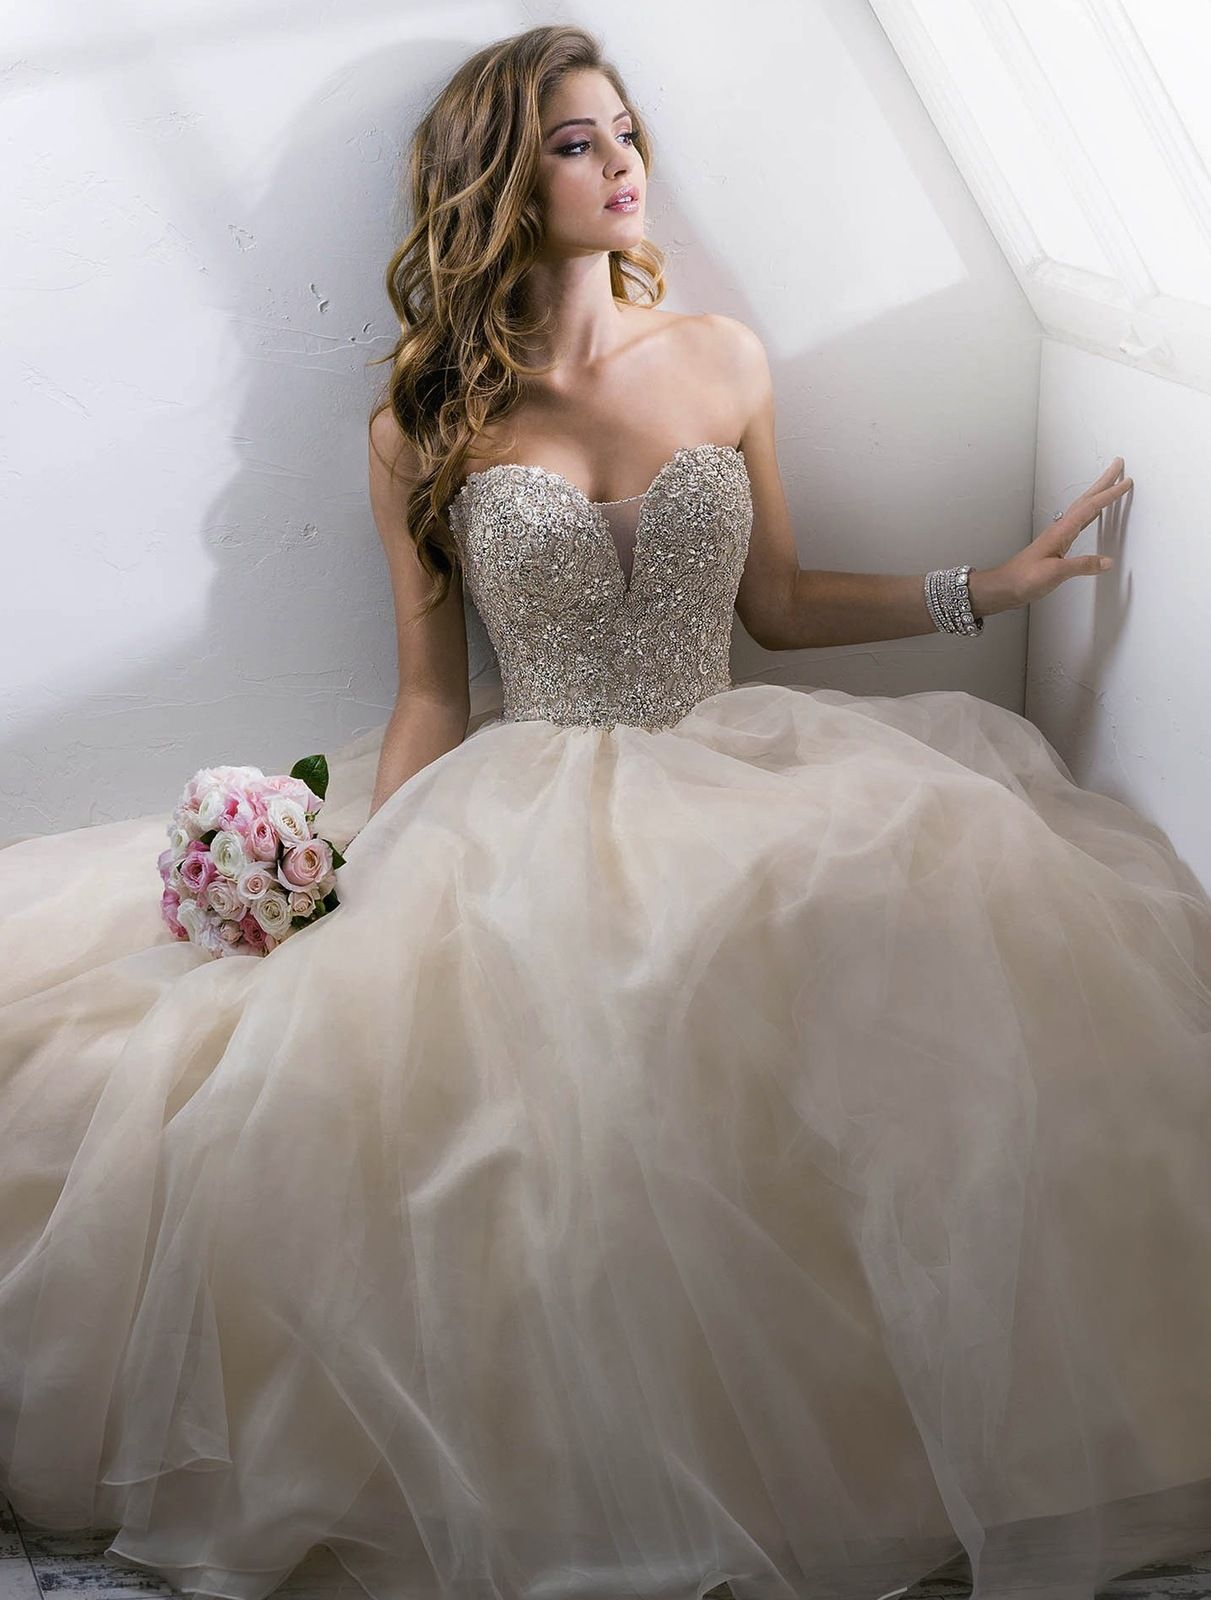 Princess celia elegant strapless embellished corset ball for Princess corset wedding dresses